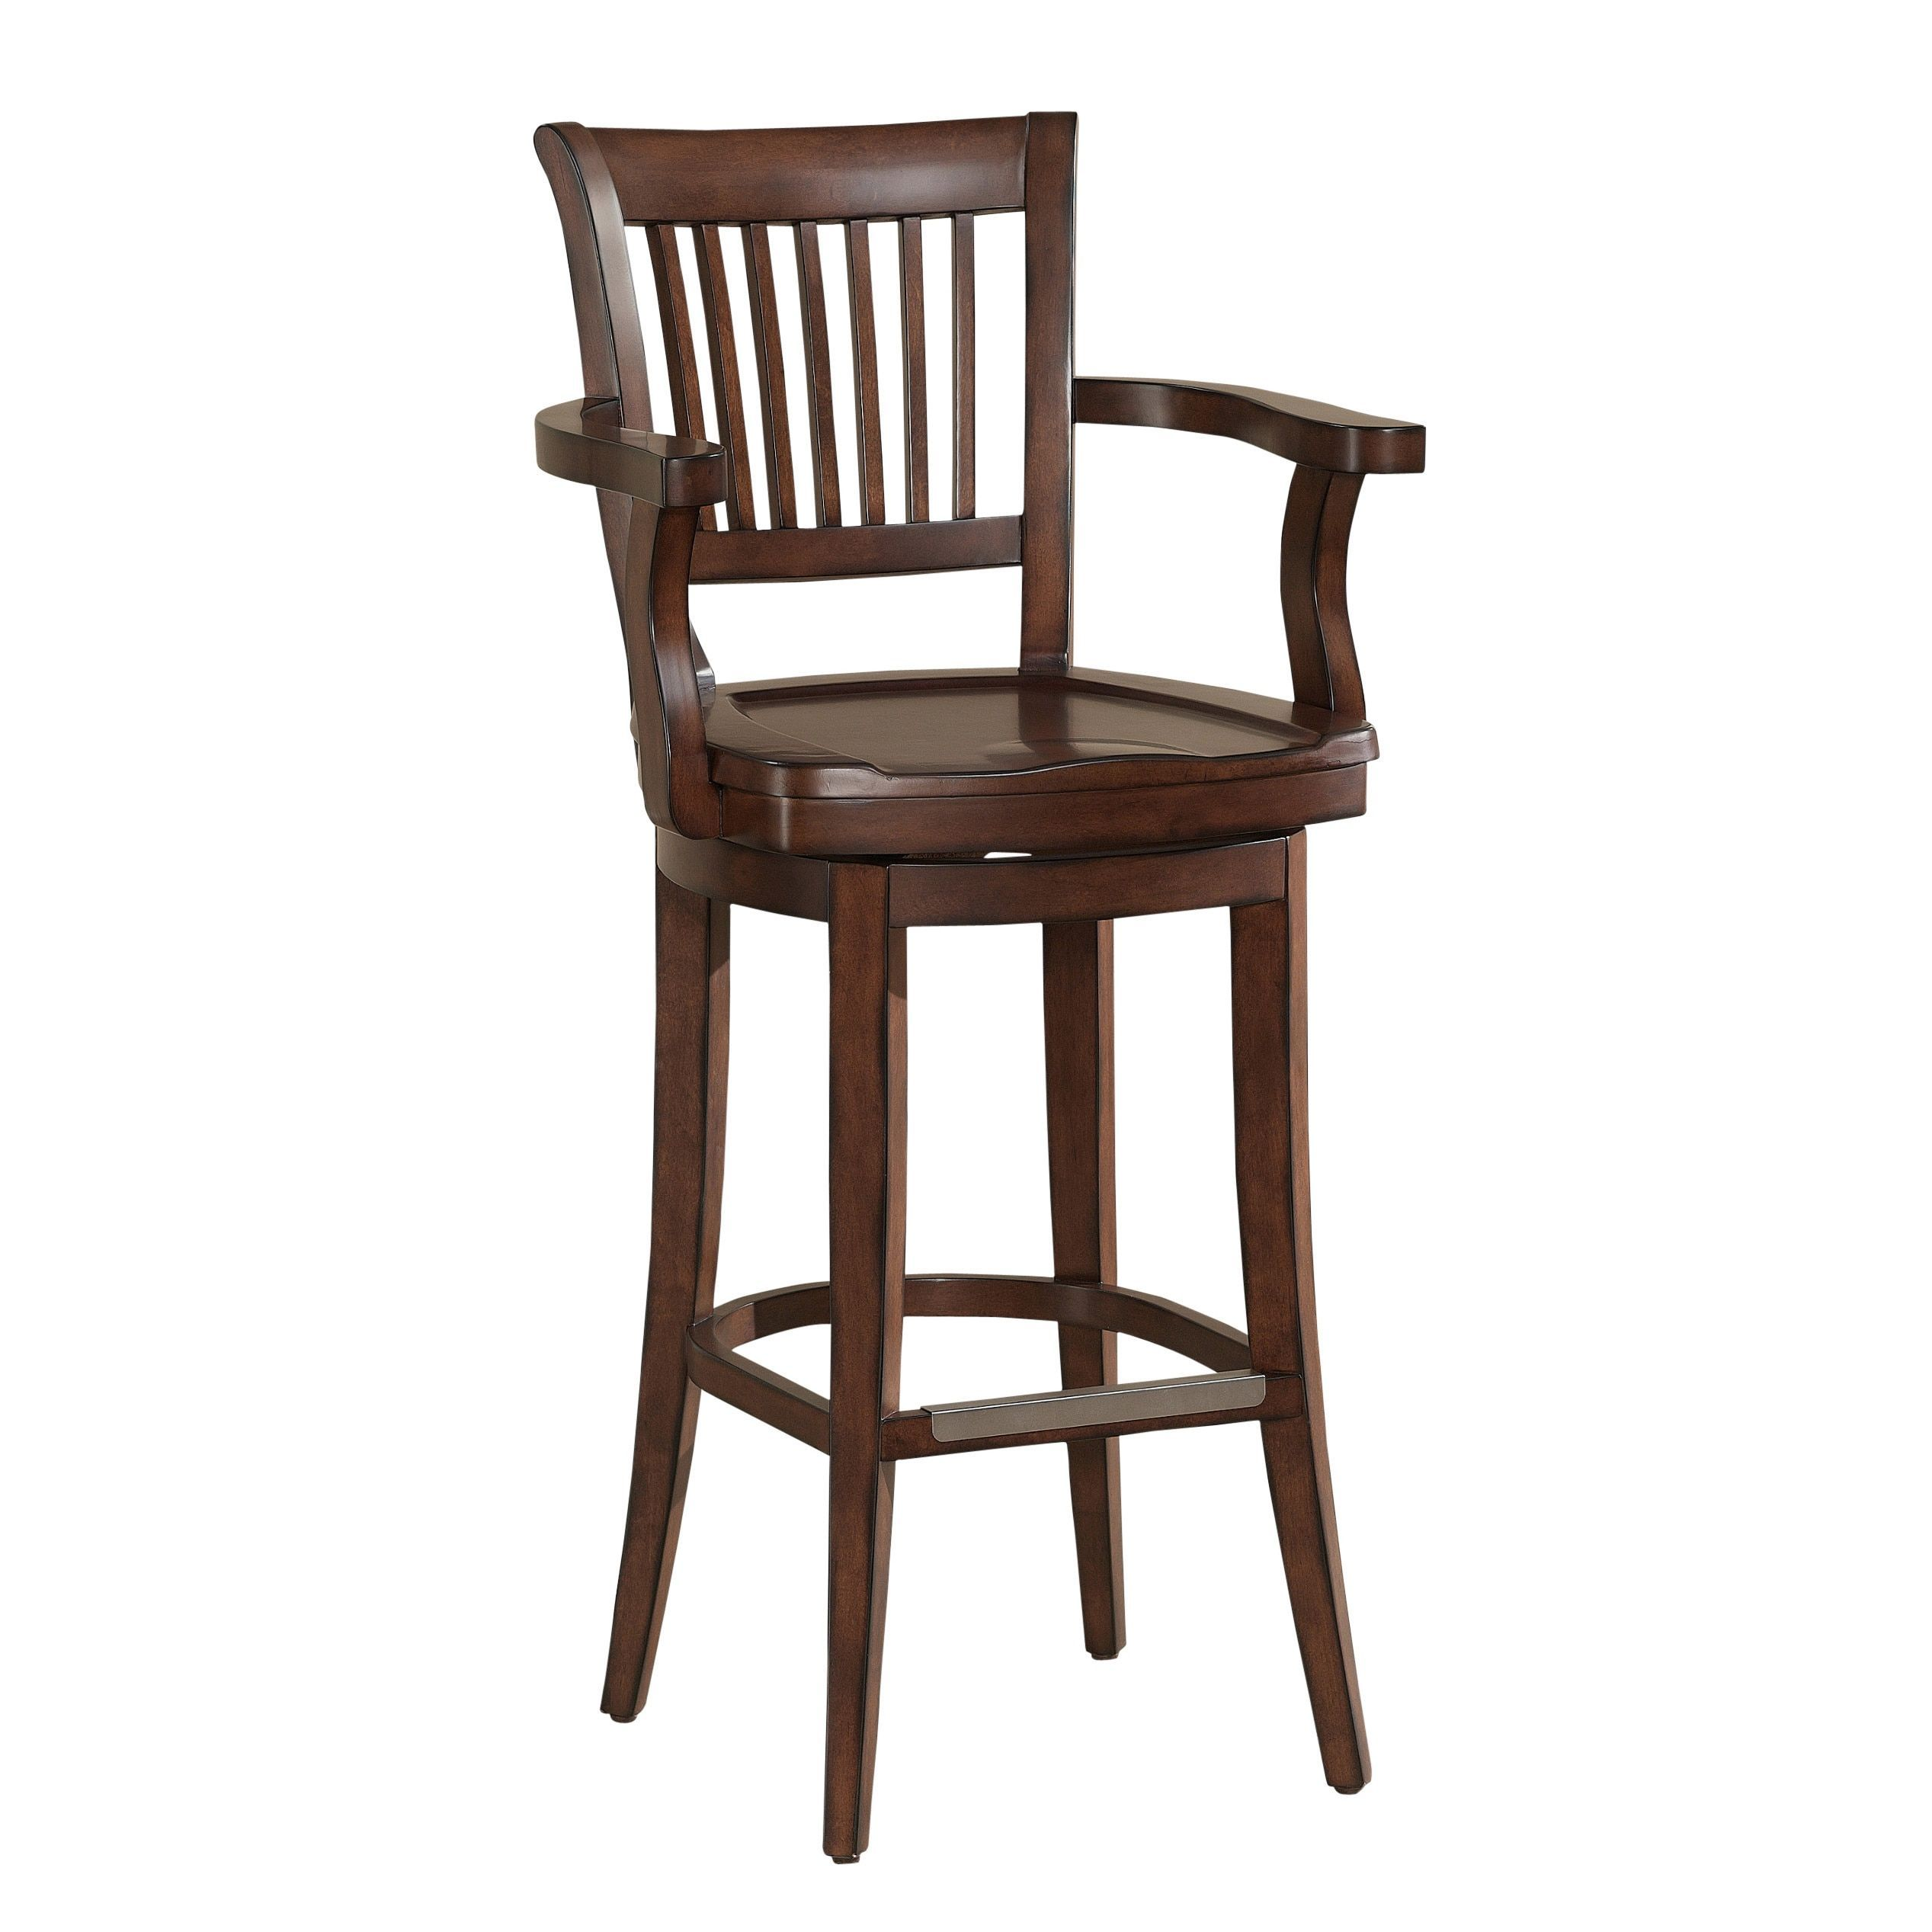 Wondrous American Kailyn 34 Inch Extra Tall Stool Kailyn Extra Tall Bralicious Painted Fabric Chair Ideas Braliciousco